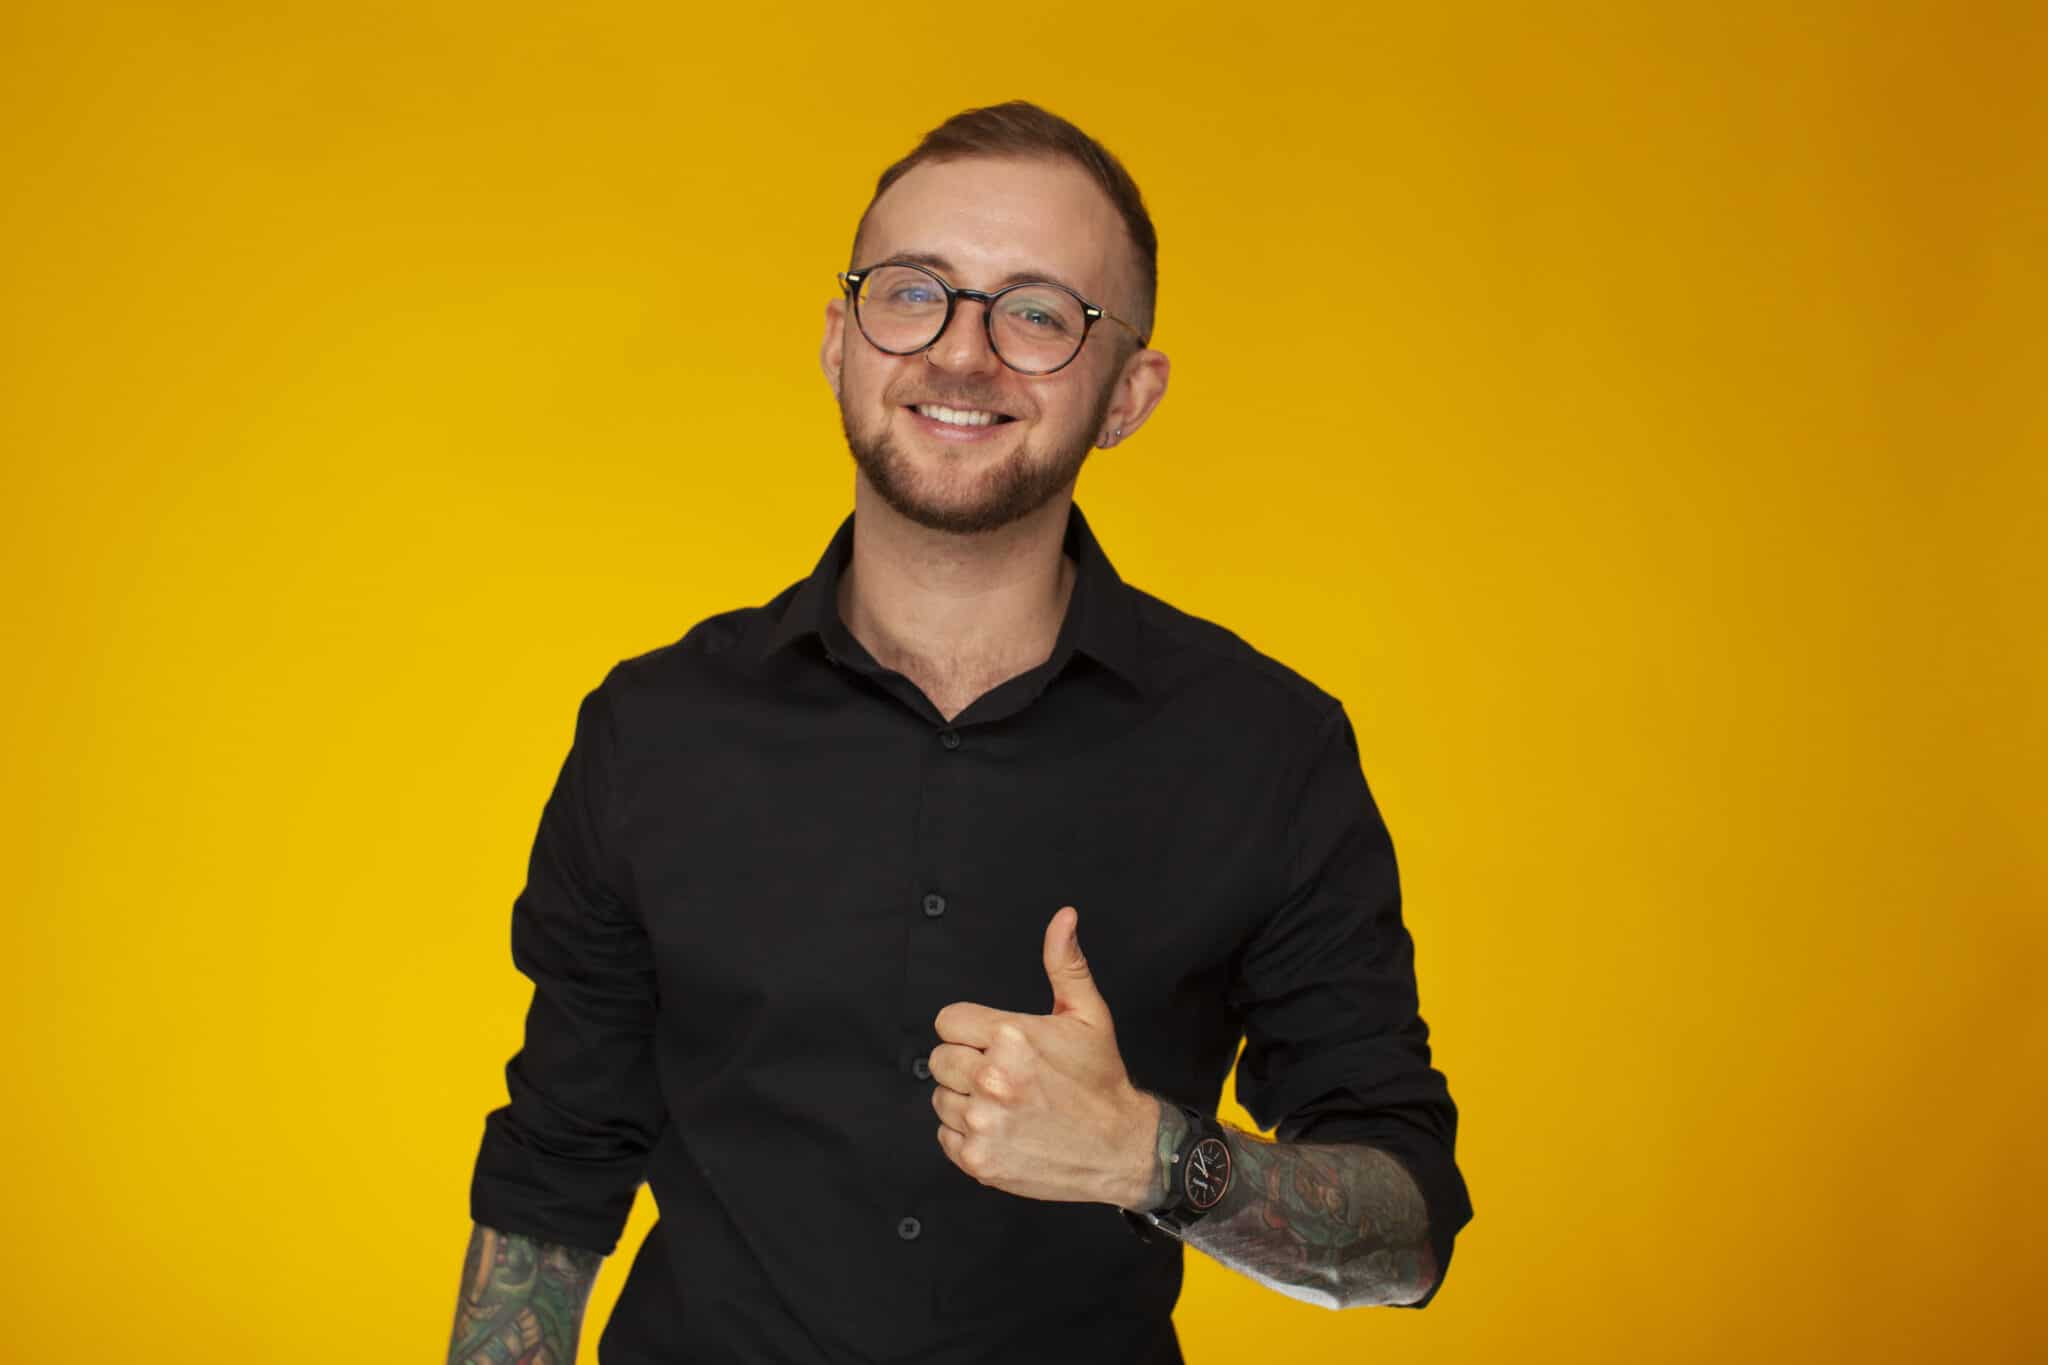 First Dates star opens up about exhausting realities of dating while trans